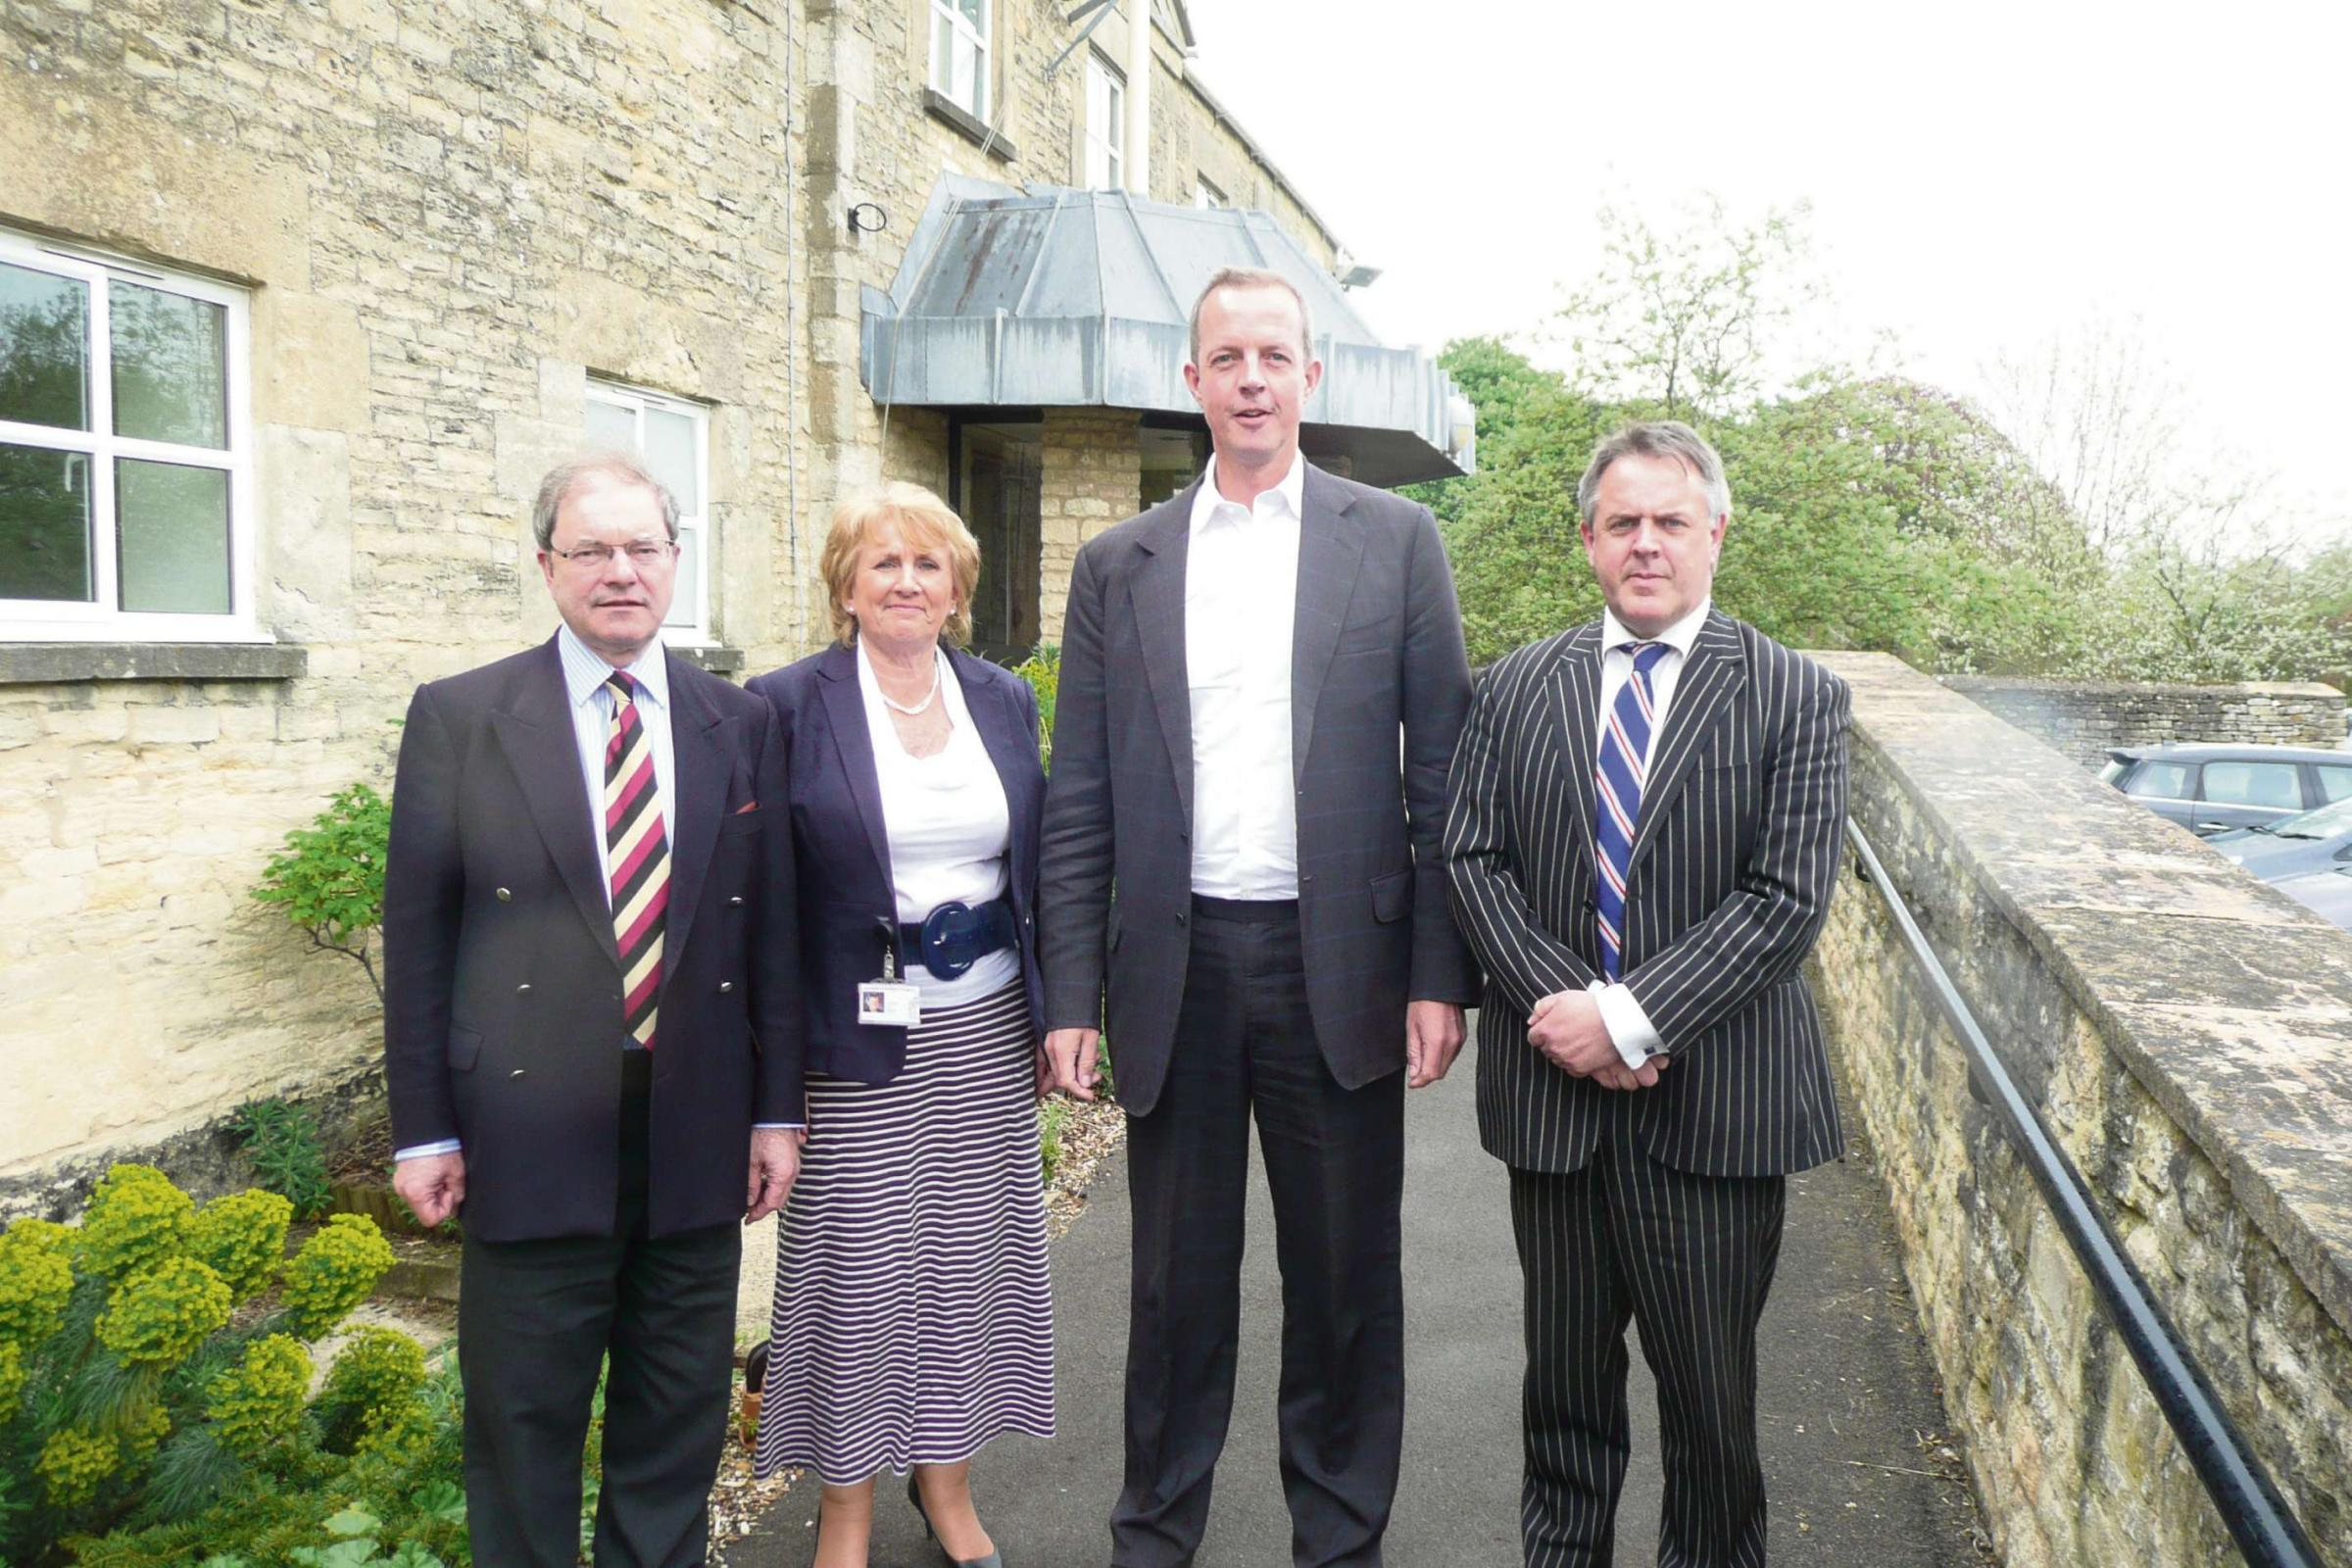 l-r Cotswold MP Geoffrey Clifton-Brown, Councillor Sue Jepson, Cotswold District Council Cabinet Member for Planning and Housing, Nick Boles MP, and Councillor Lynden Stow, Leader of Cotswold District Council.